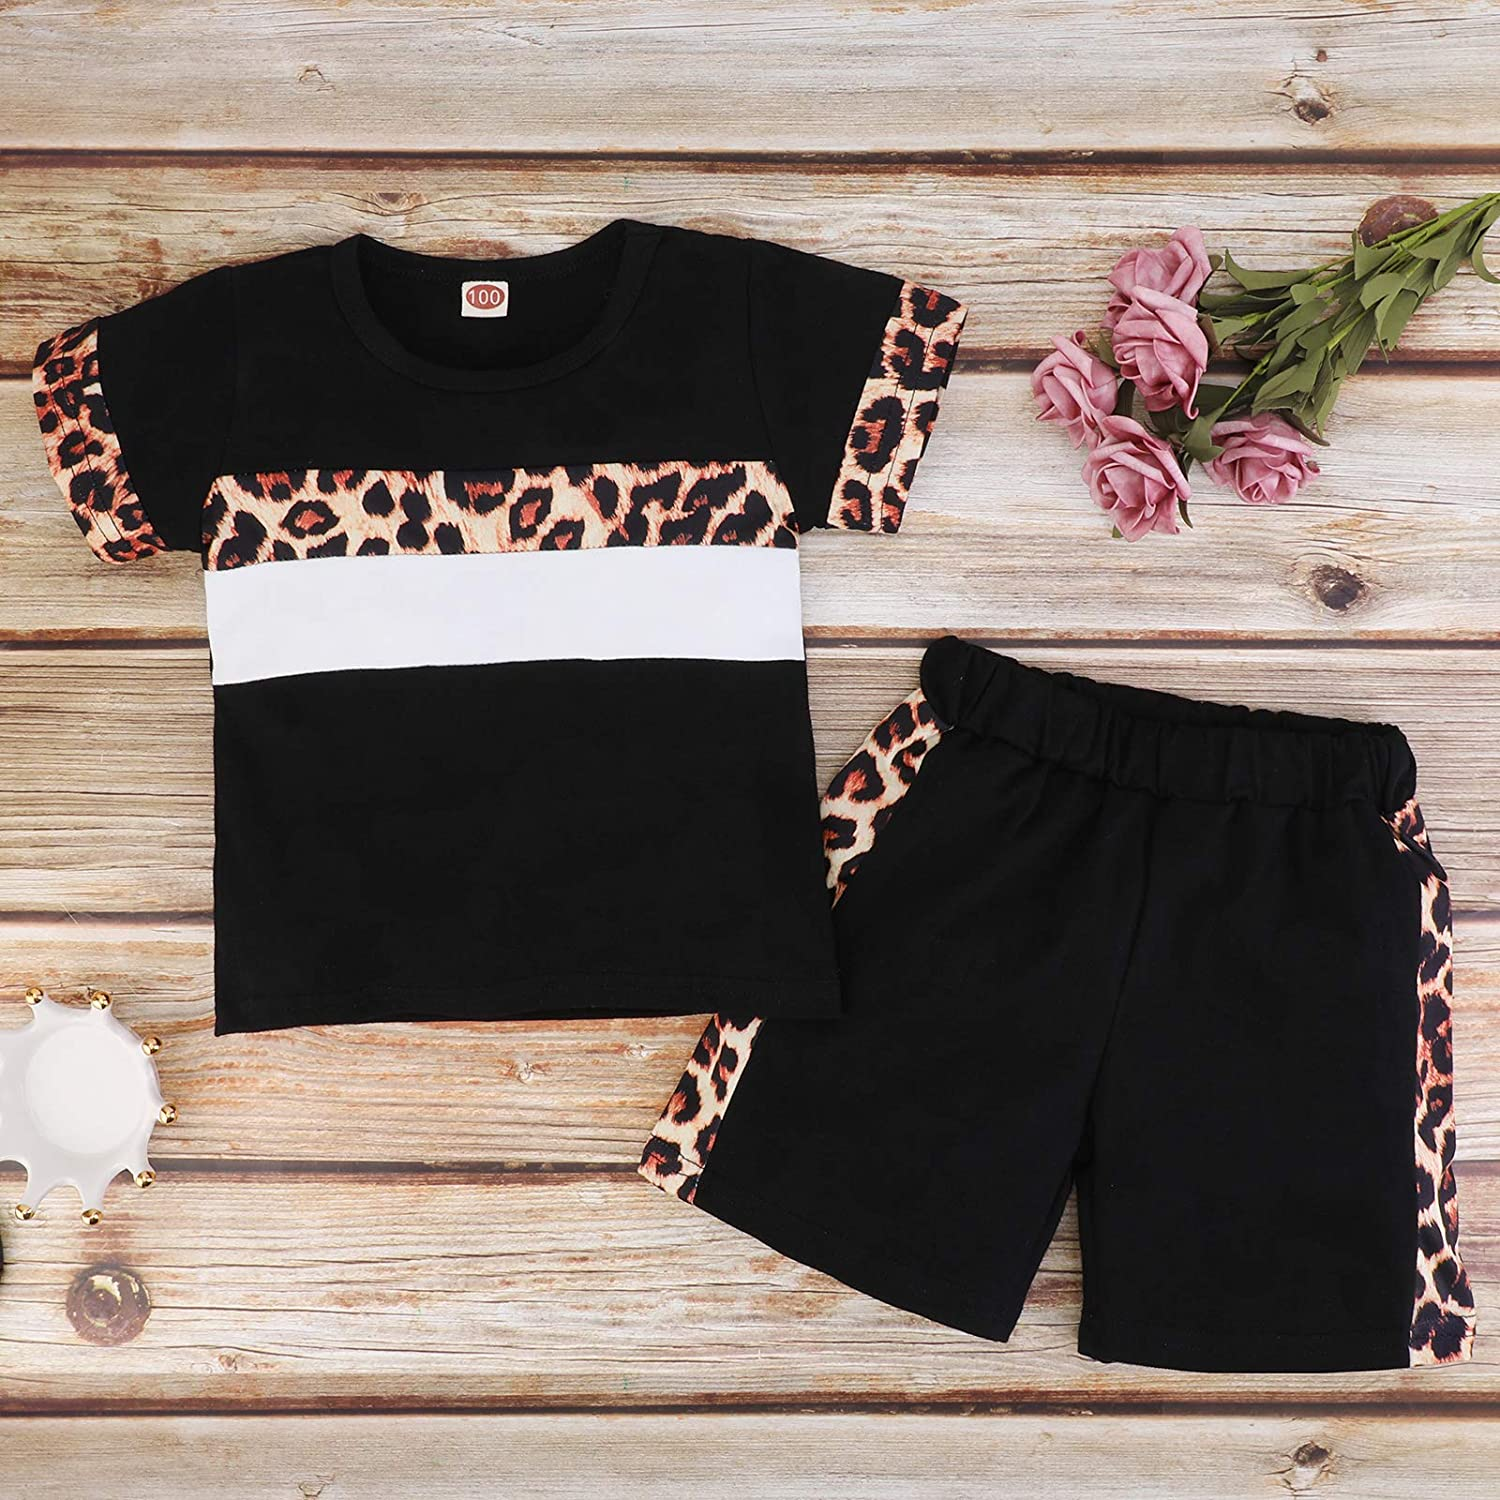 Toddler Girl Summer Clothes Short Sleeve Leopard T-Shirt Top + Shorts Pants 2PCS Baby Outfit Set